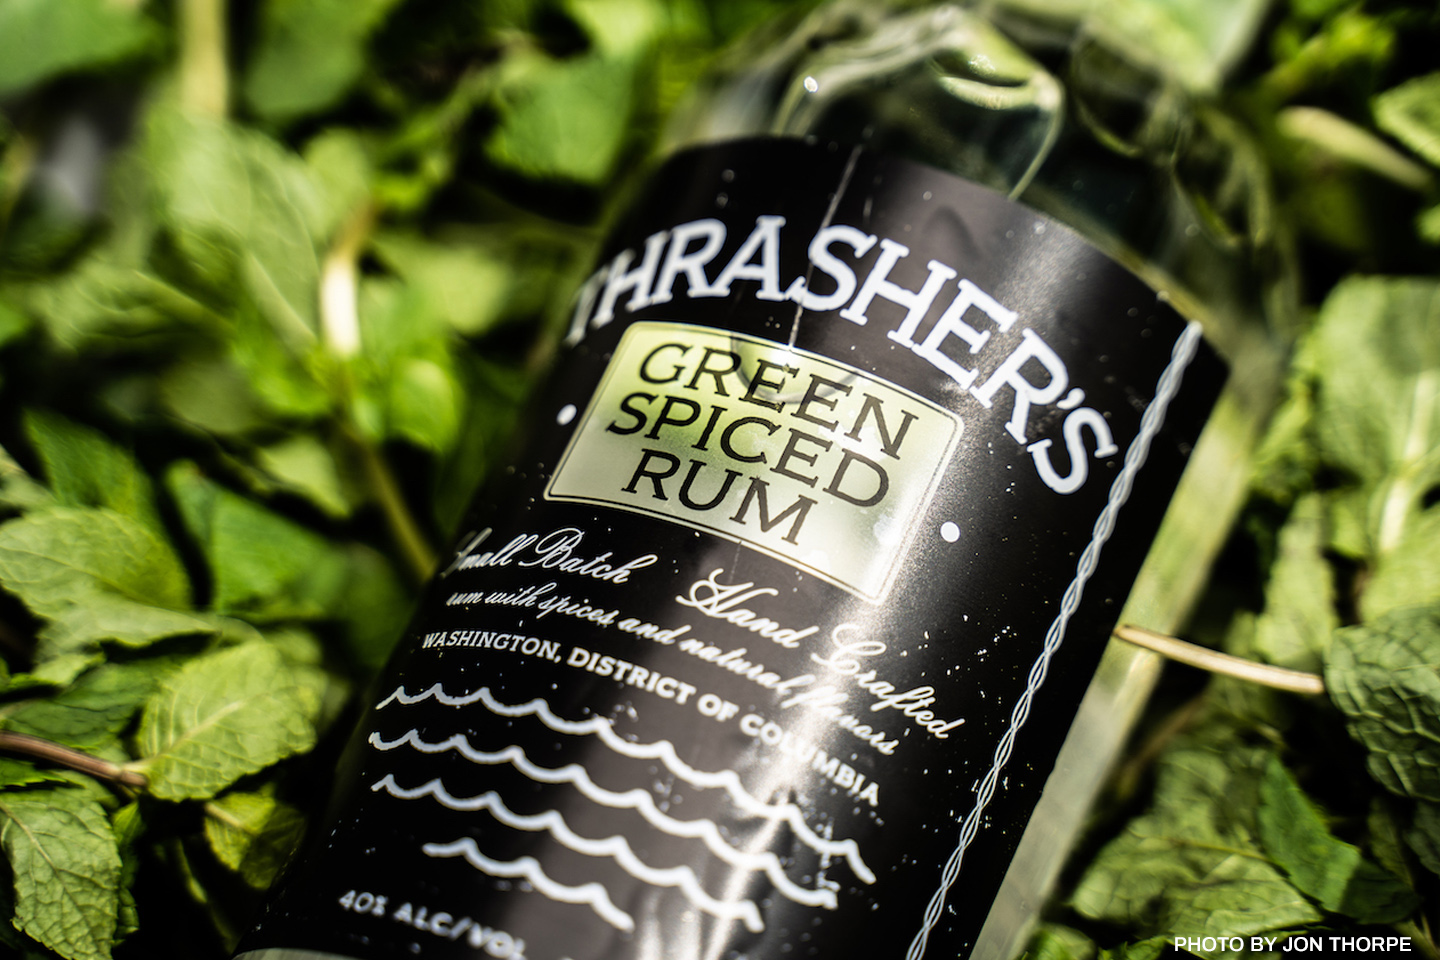 Thrasher's Green Spiced Rum is made with herbs grown in Todd Thrasher's backyard, including lemon verbena, lemongrass, lemon balm, mint and green cardamom, he said.